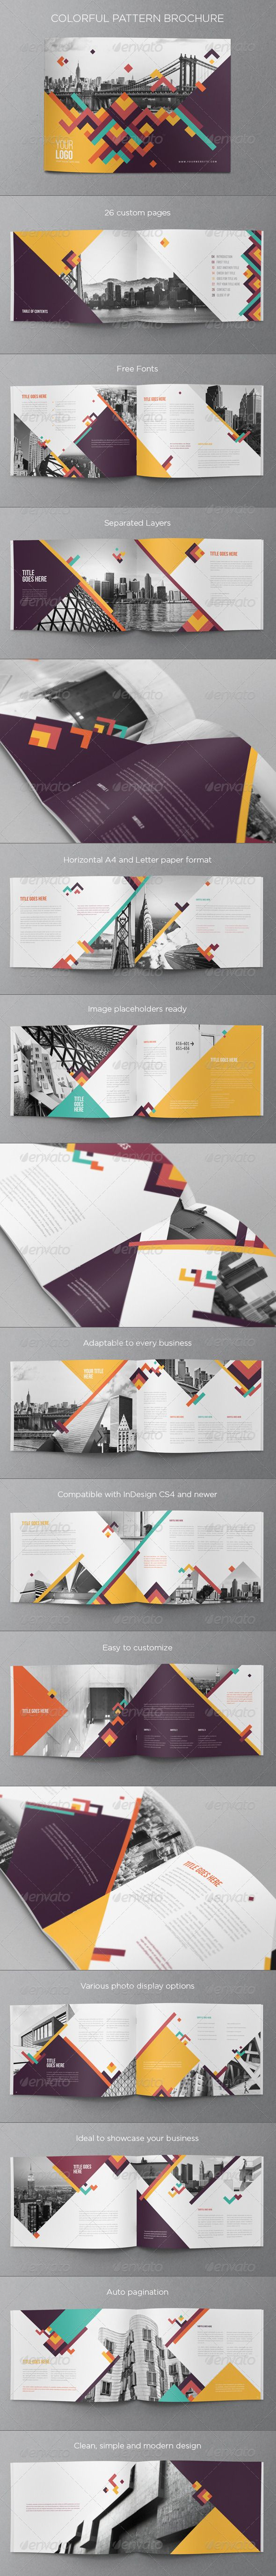 Colorful Pattern Brochure - Brochures Print Templates / Lignes de force diagonales